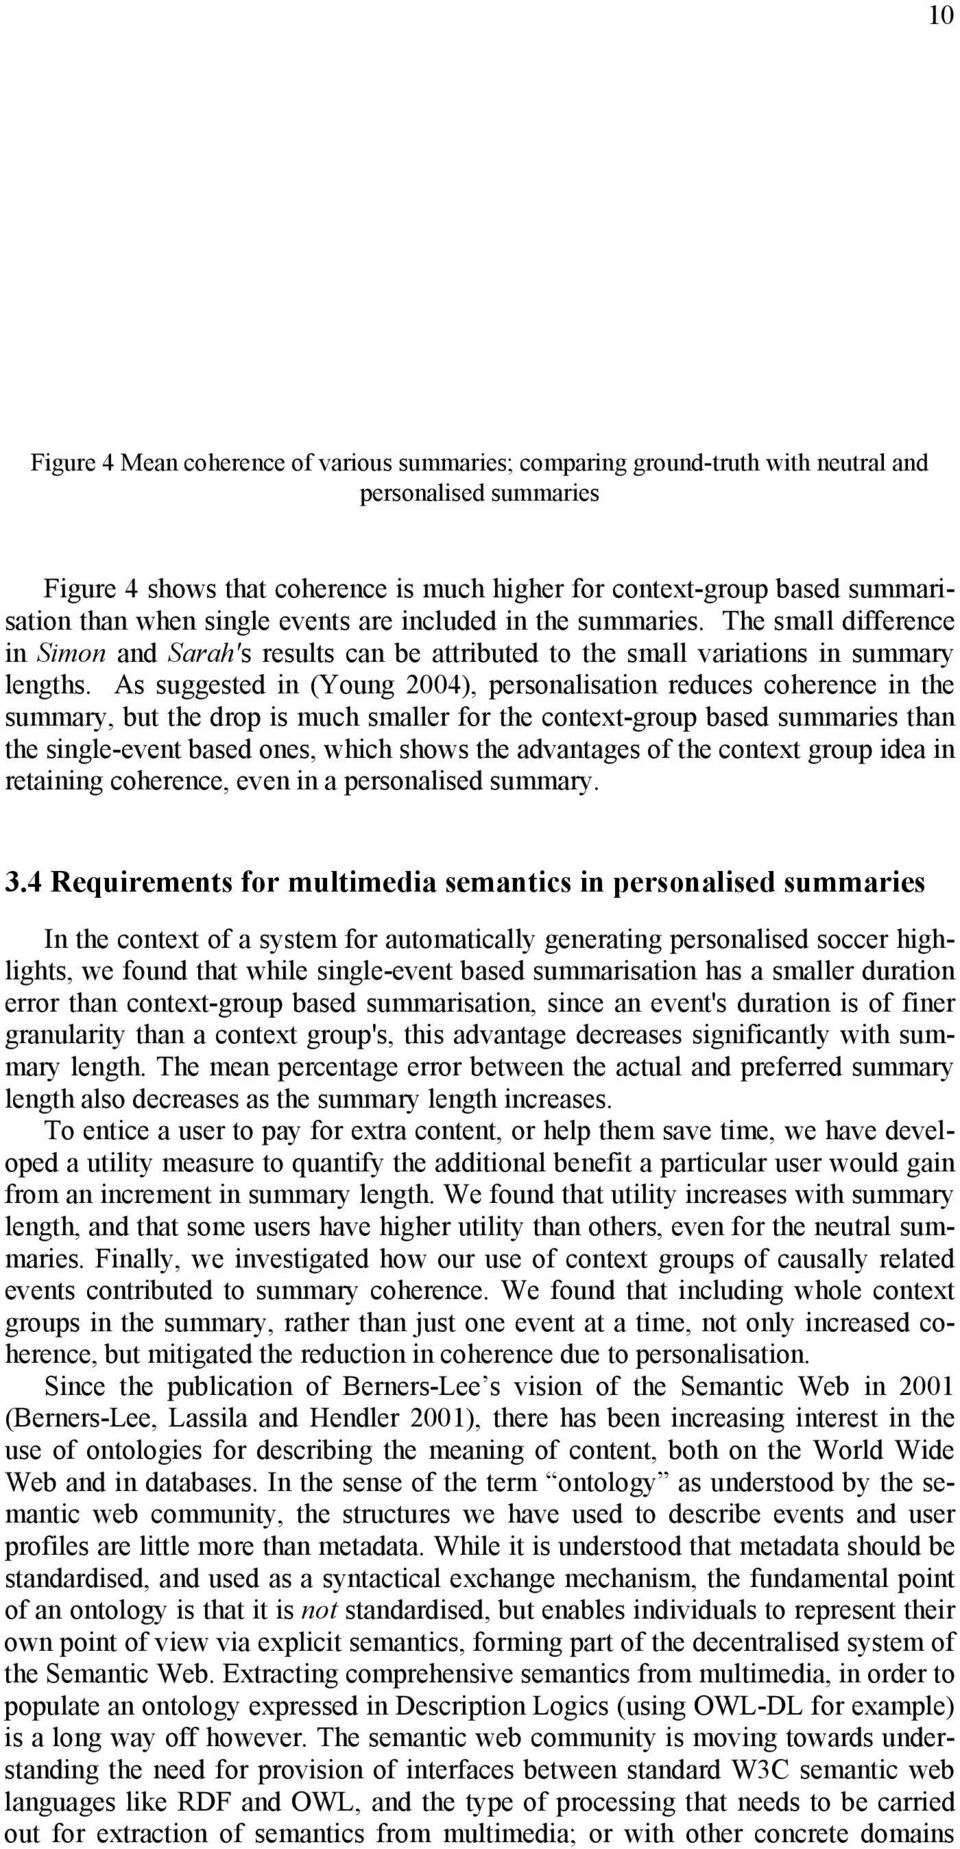 As suggested in (Young 2004), personalisation reduces coherence in the summary, but the drop is much smaller for the context-group based summaries than the single-event based ones, which shows the